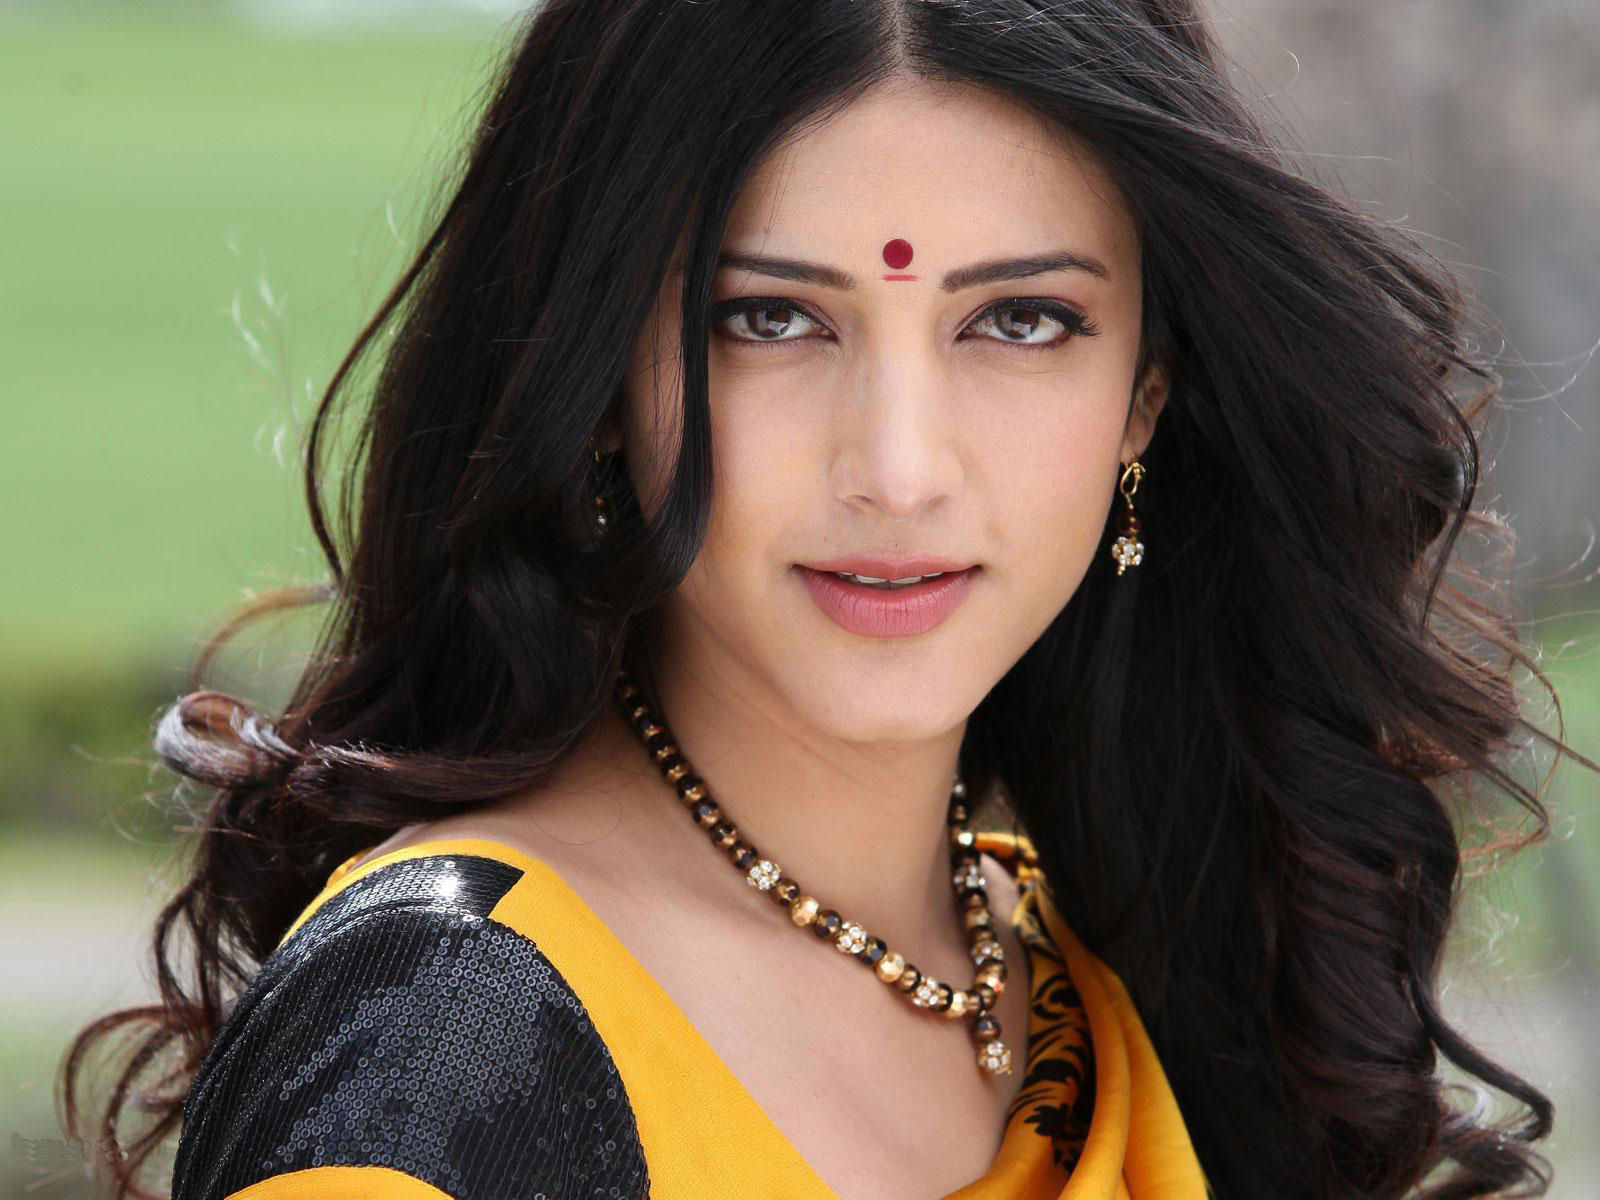 Advertisements. Wallpaper : shruti hassan actress wallpaper